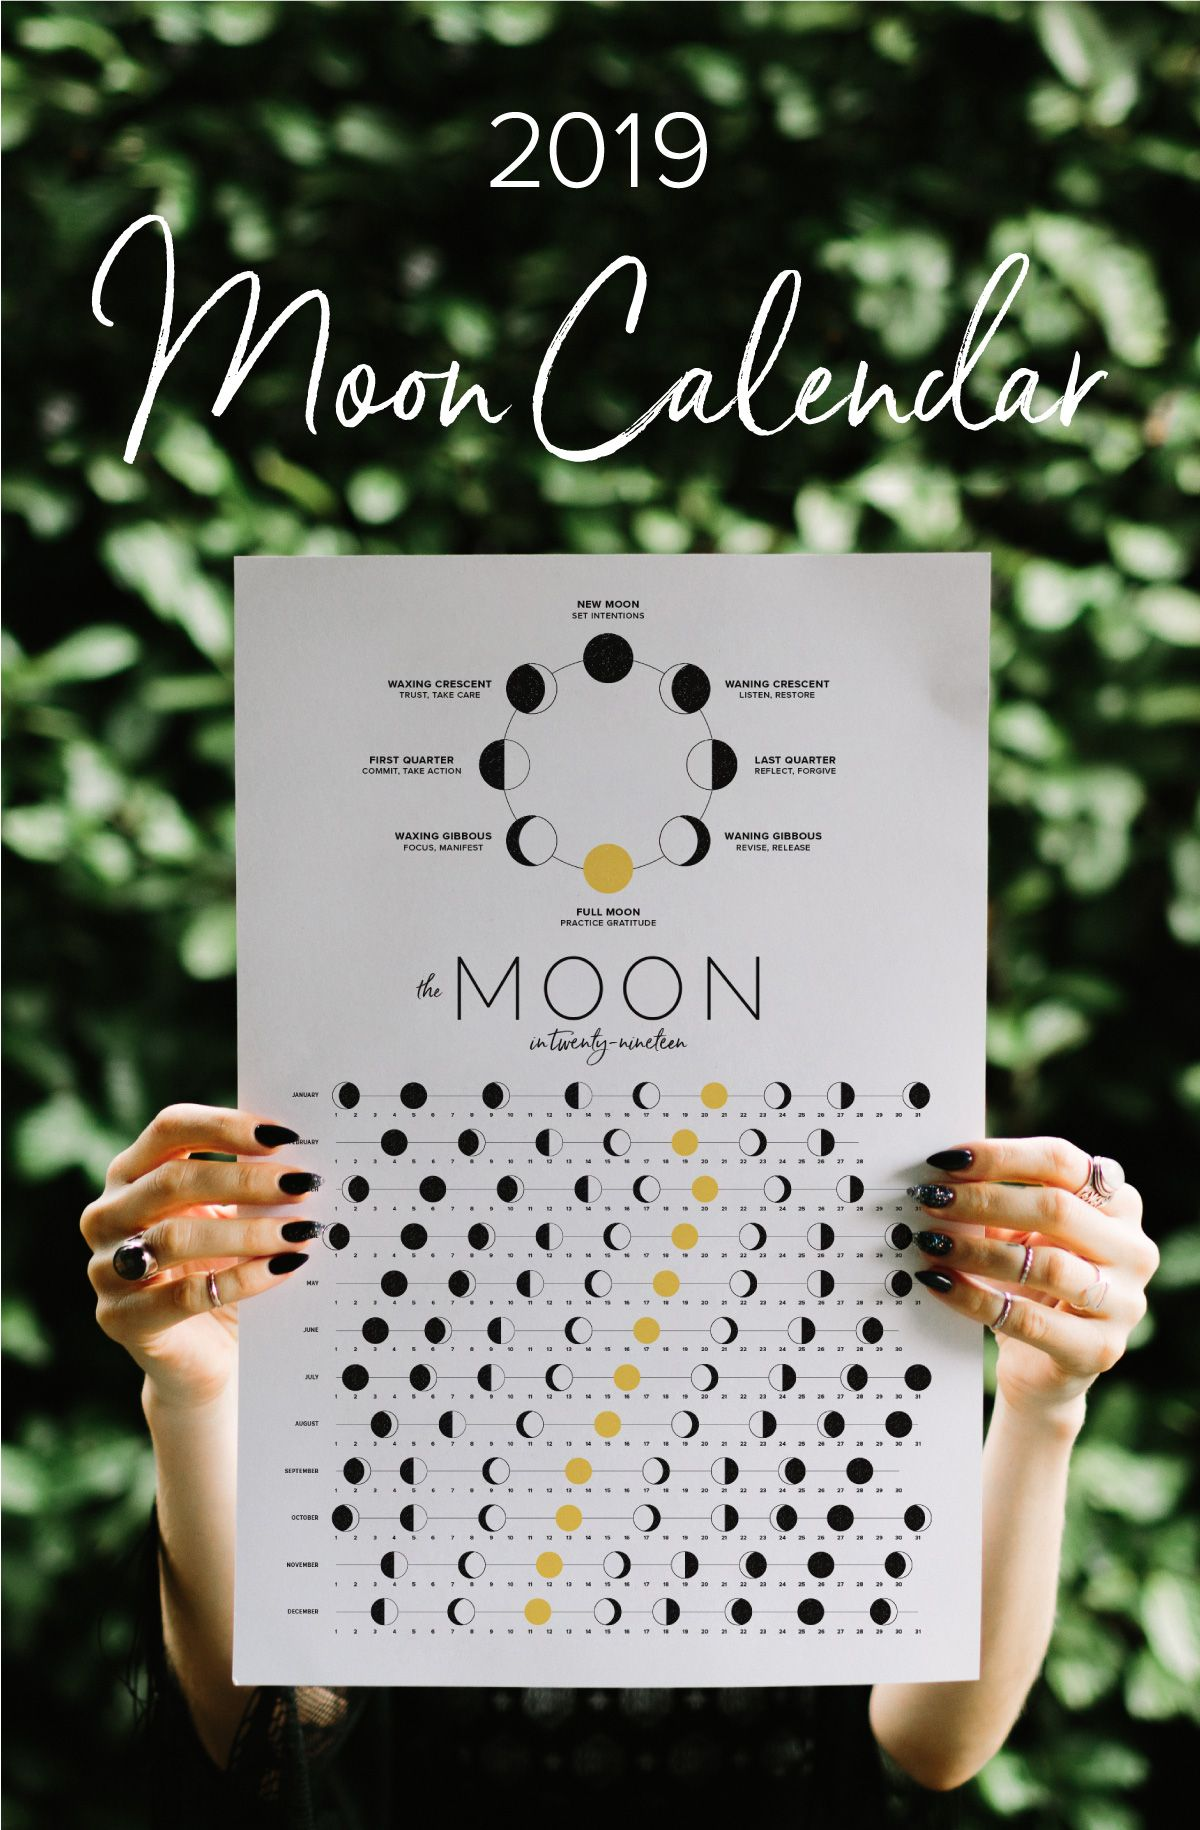 A Moon Calendar Featuring Intention Setting Cues